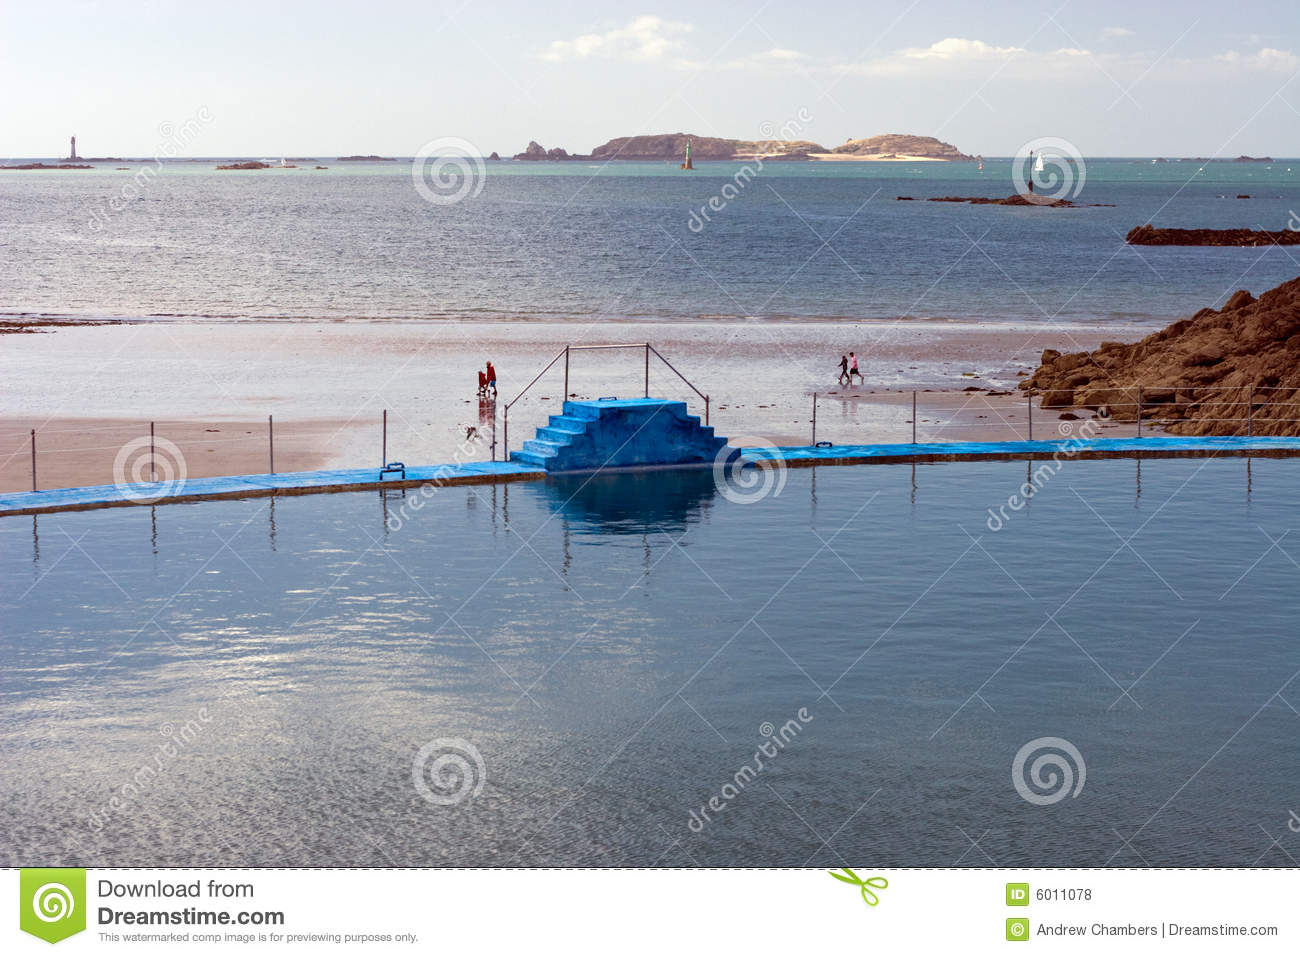 Piscine dans dinard photo stock image du saint les for Piscine dinard